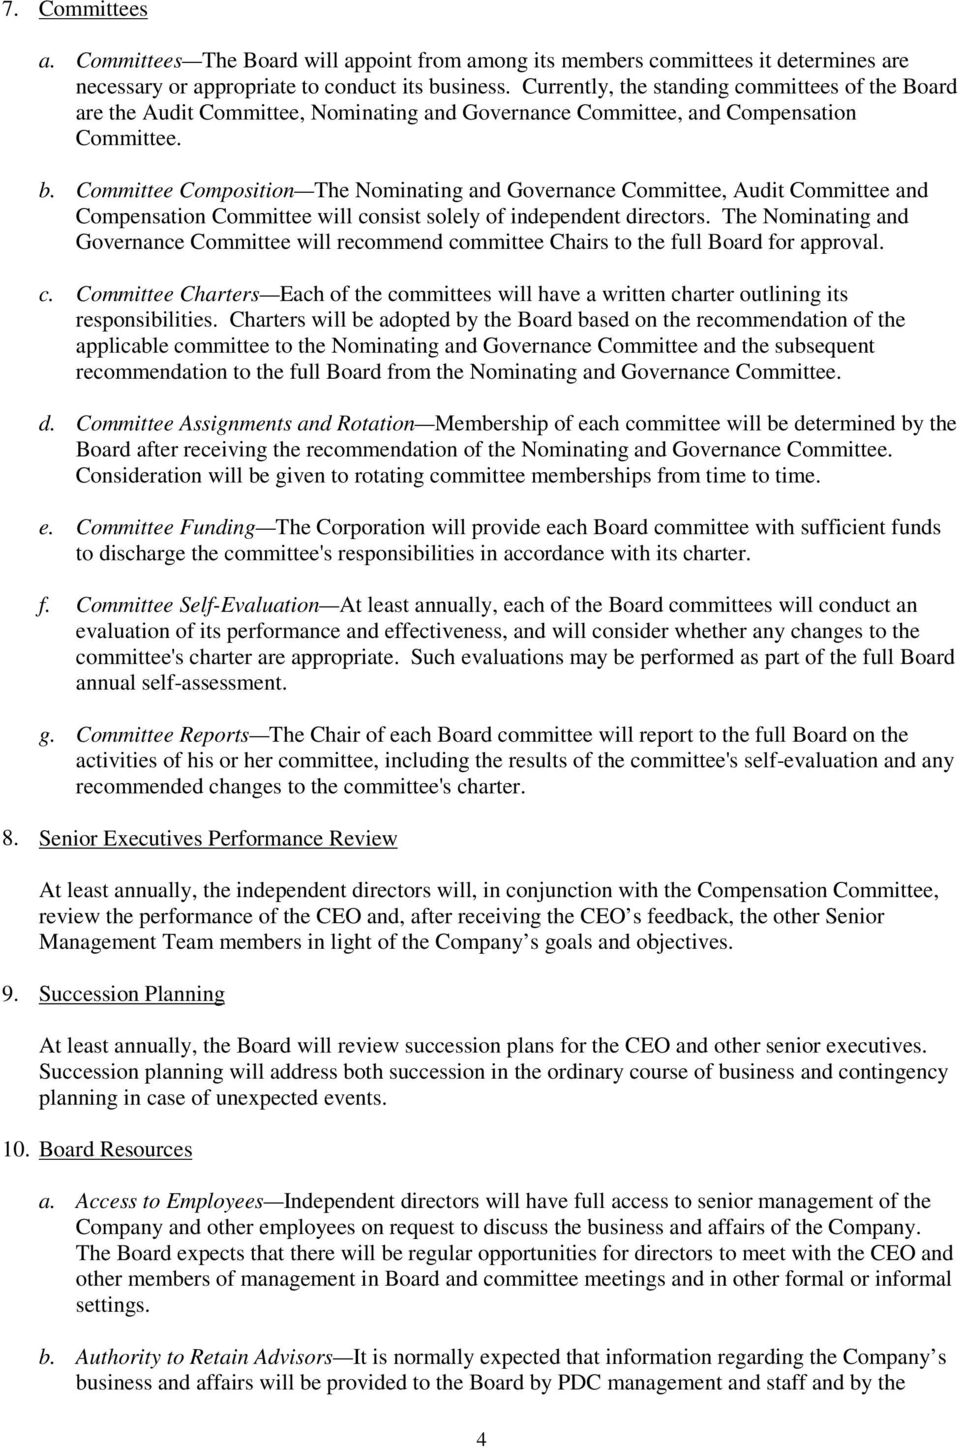 Committee Composition The Nominating and Governance Committee, Audit Committee and Compensation Committee will consist solely of independent directors.